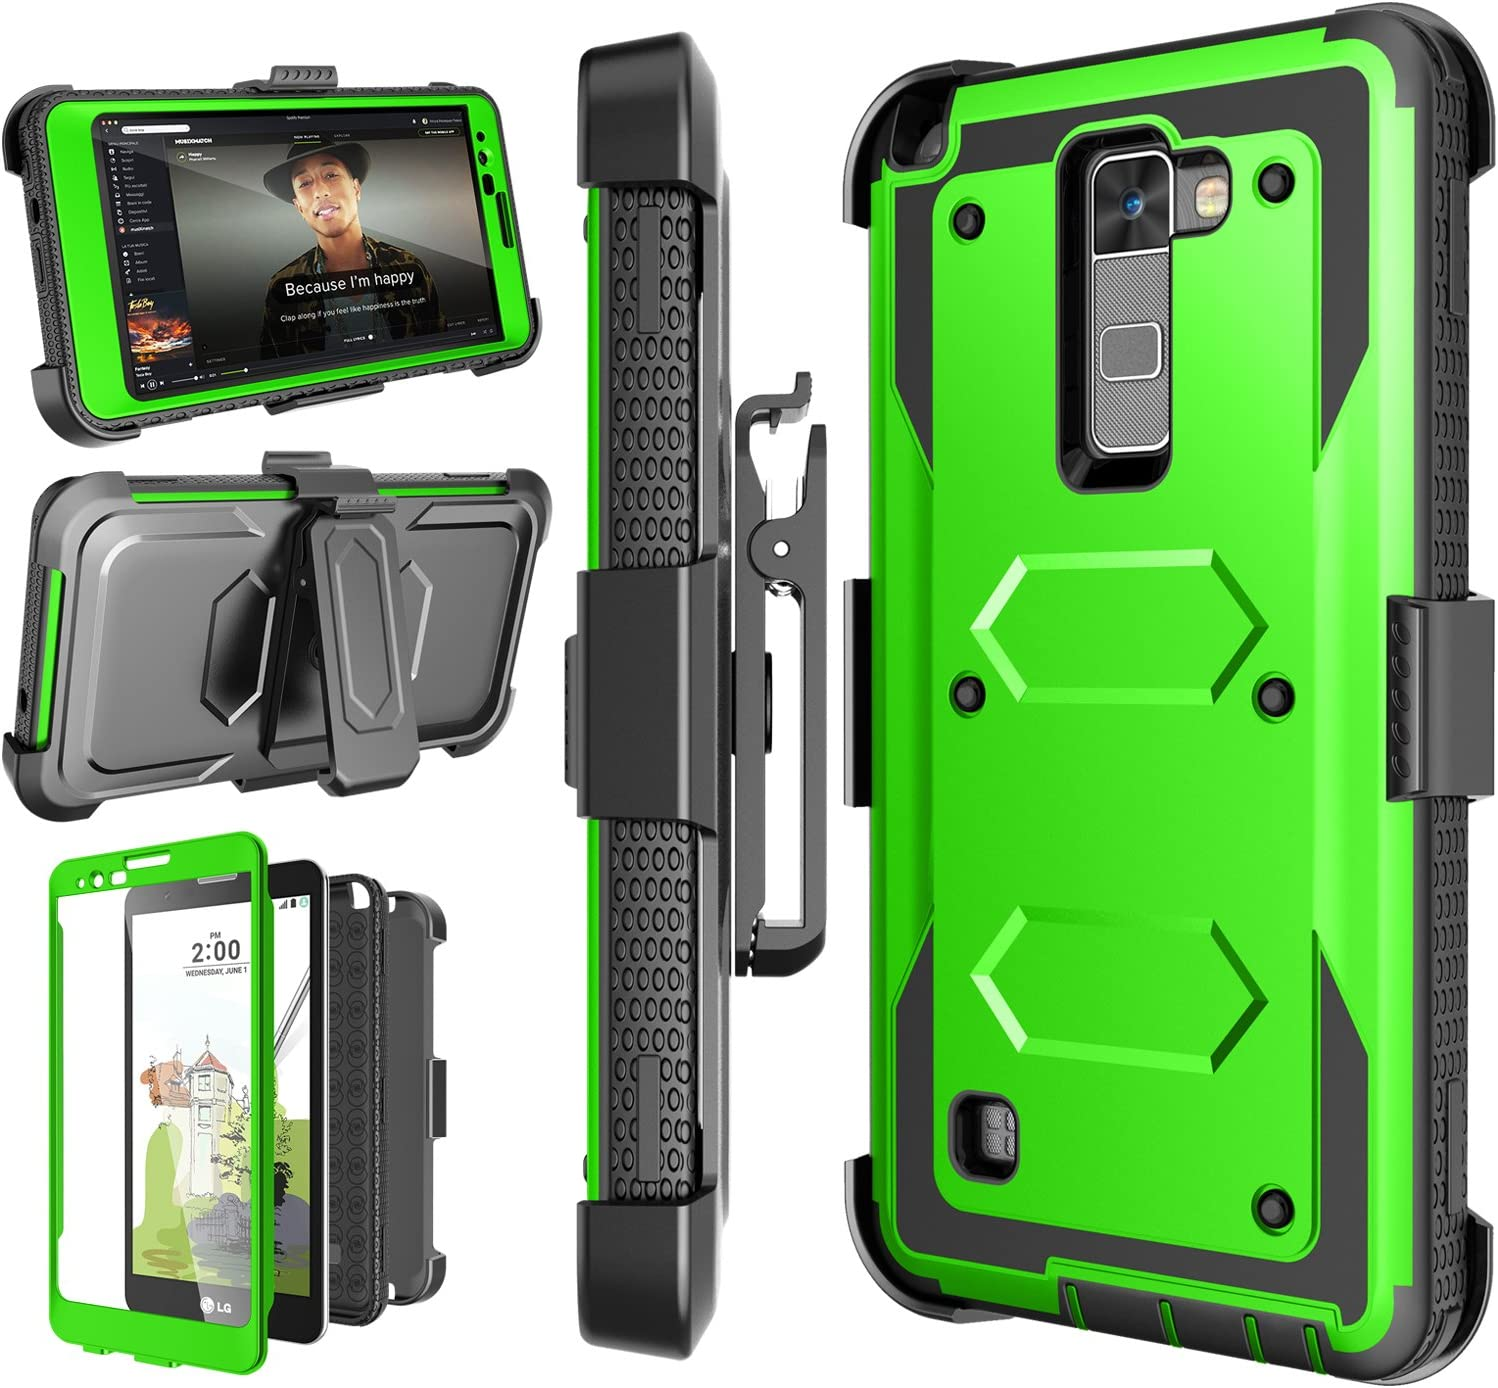 Njjex for LG Stylo 2/ 2V Case, for LG Stylo 2 Plus Case, [Nbeck] Heavy Duty Built-in Screen Protector Rugged Holster Locking Belt Clip Kickstand Cover Shell for LG Stylus 2/Stylus 2 Plus [Green]